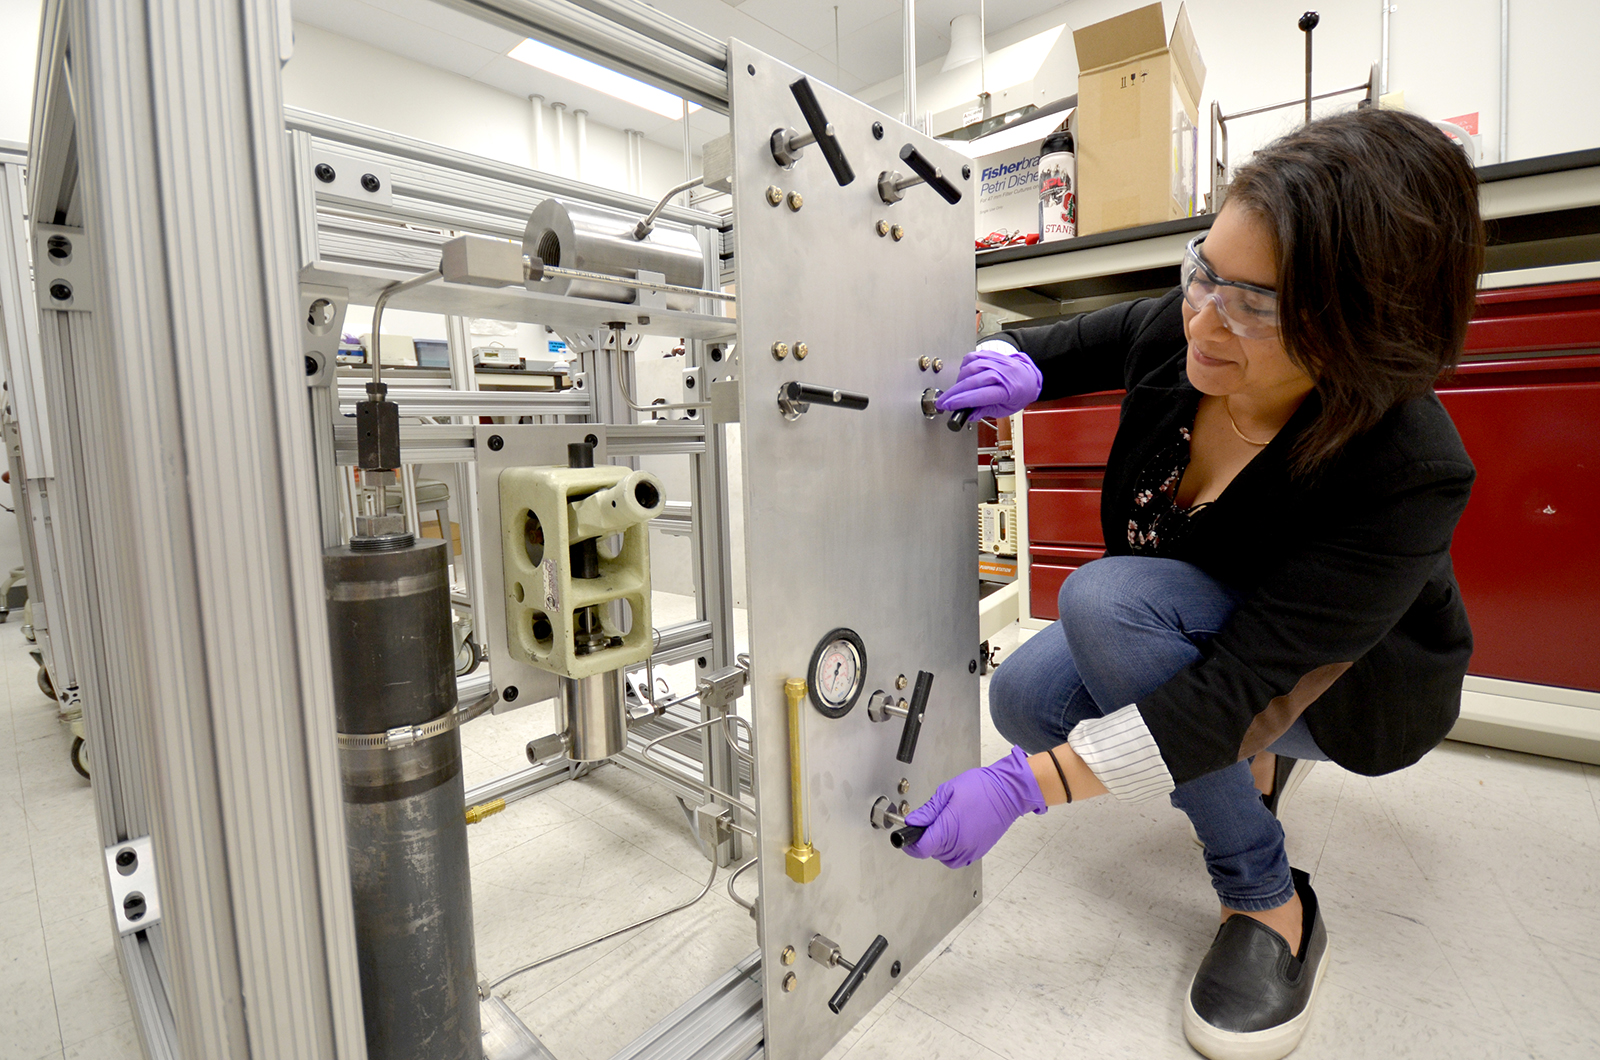 JPL intern Kathy Vega inspects the experiment she's helping create